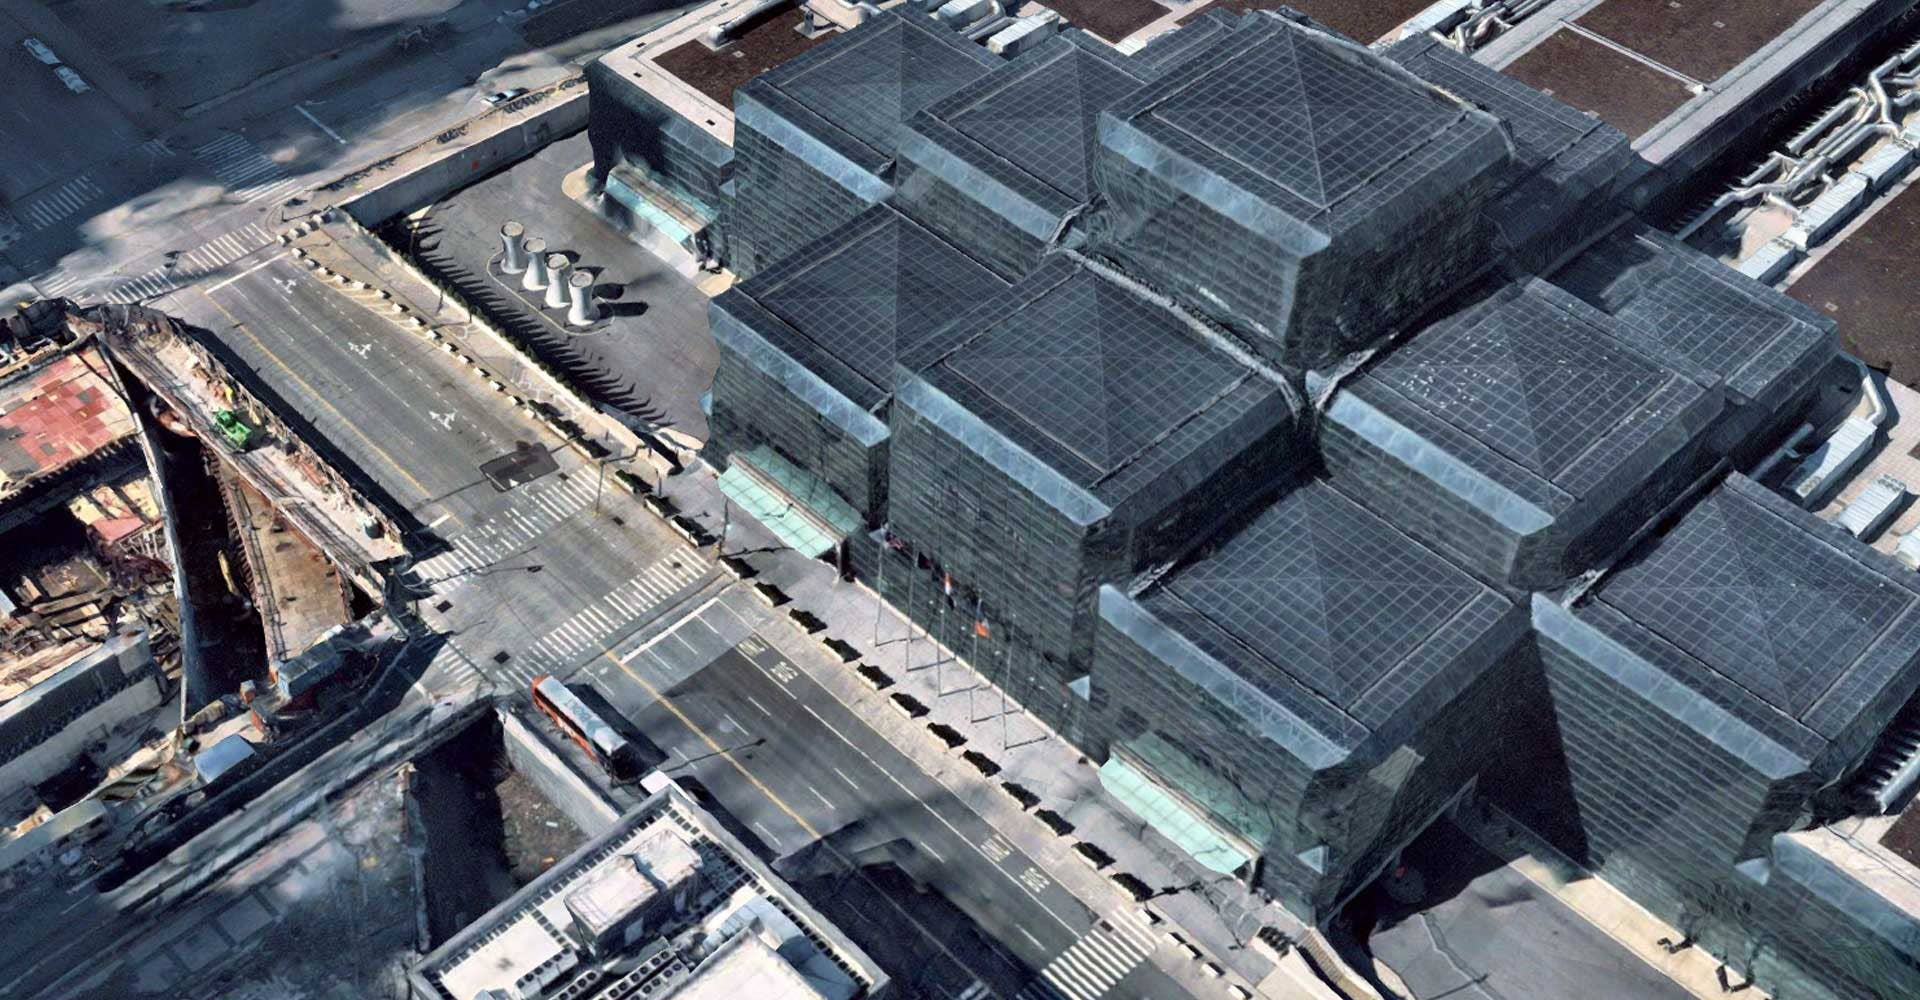 Aerial imagery support, Javits Convention Center in New York, NY